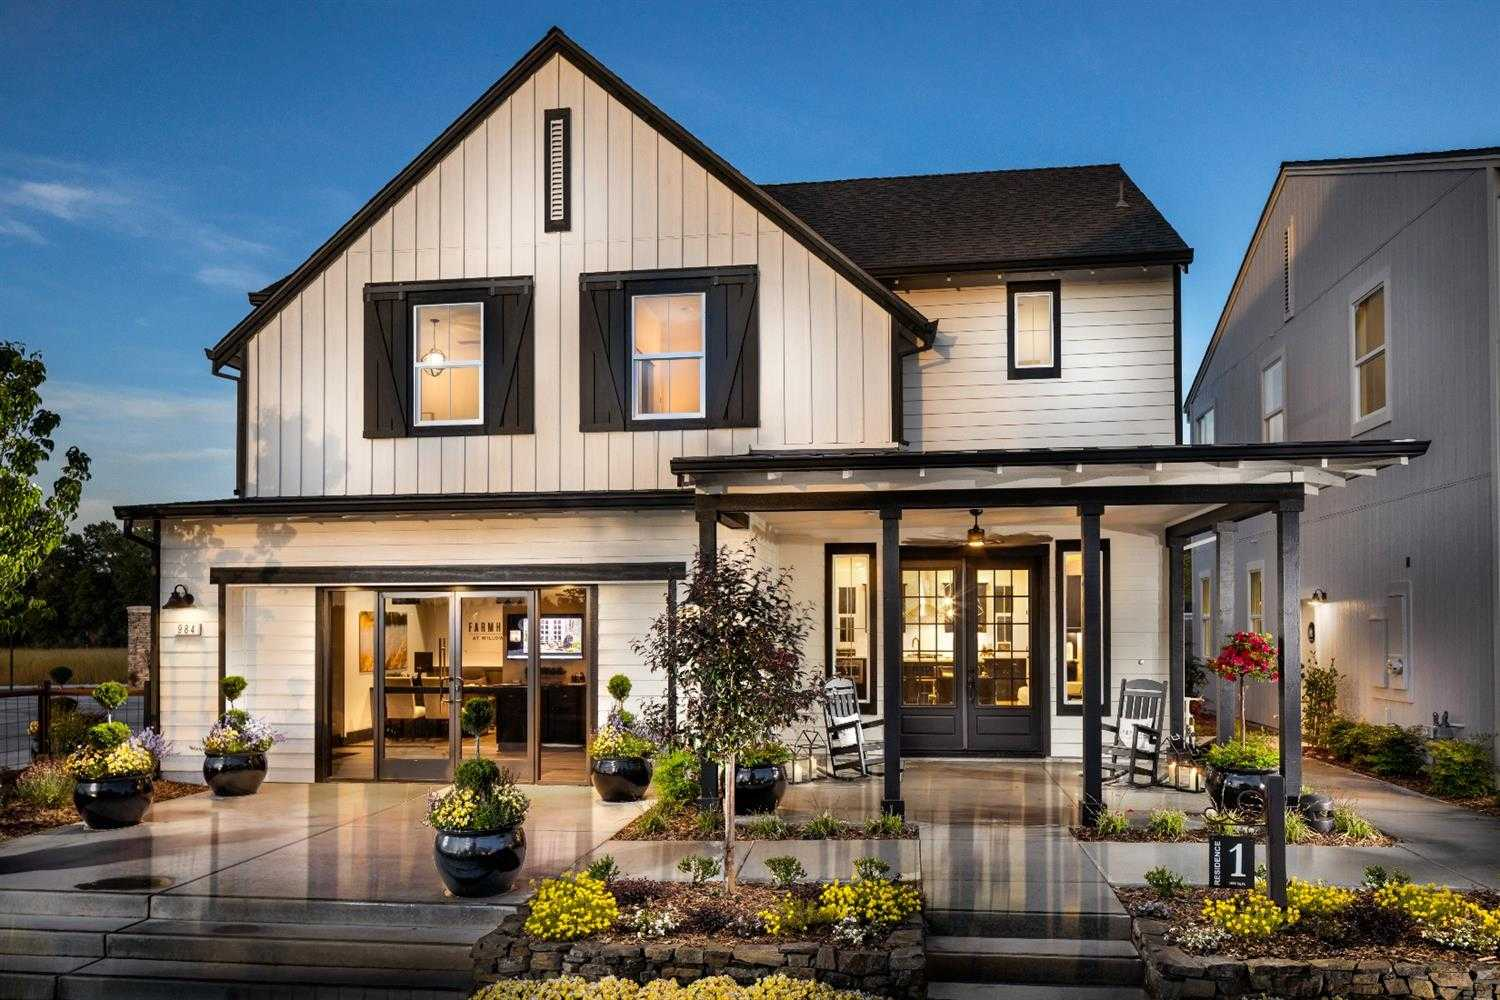 $552,450 - 3Br/3Ba -  for Sale in Farmhouse At Willow Creek, Folsom